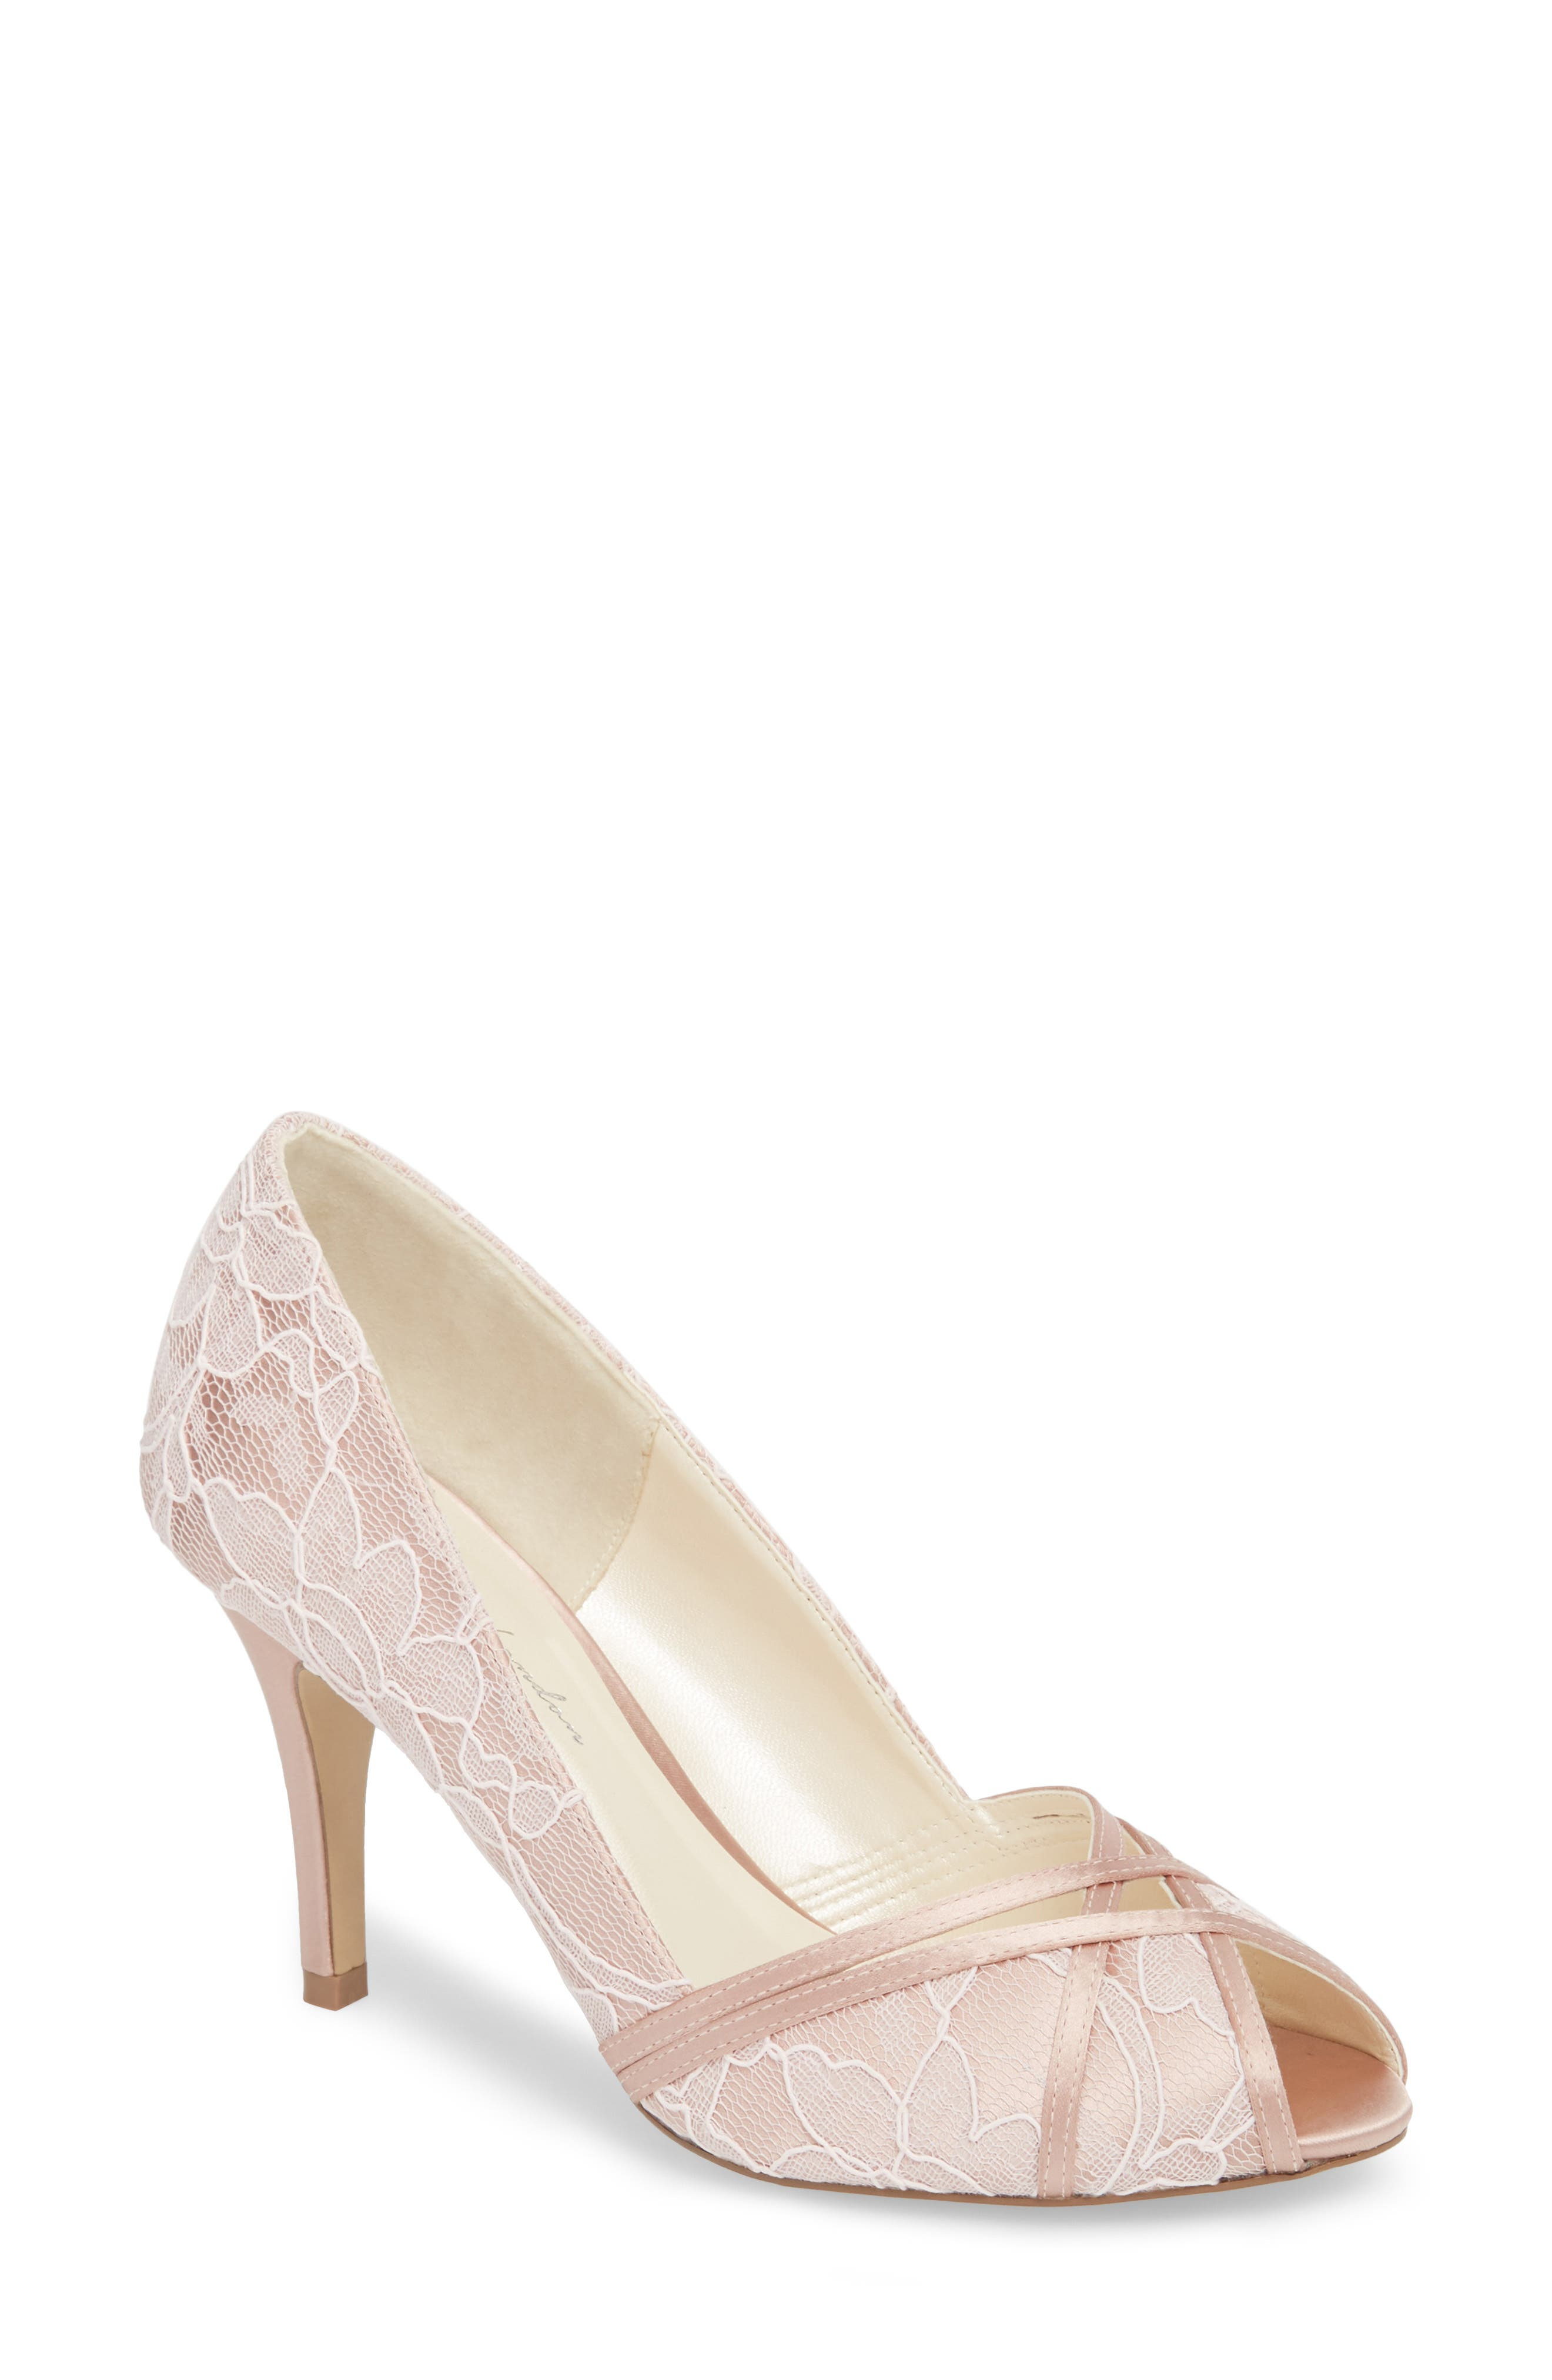 Cherie Embroidered Peep Toe Pump,                             Main thumbnail 1, color,                             BLUSH SATIN